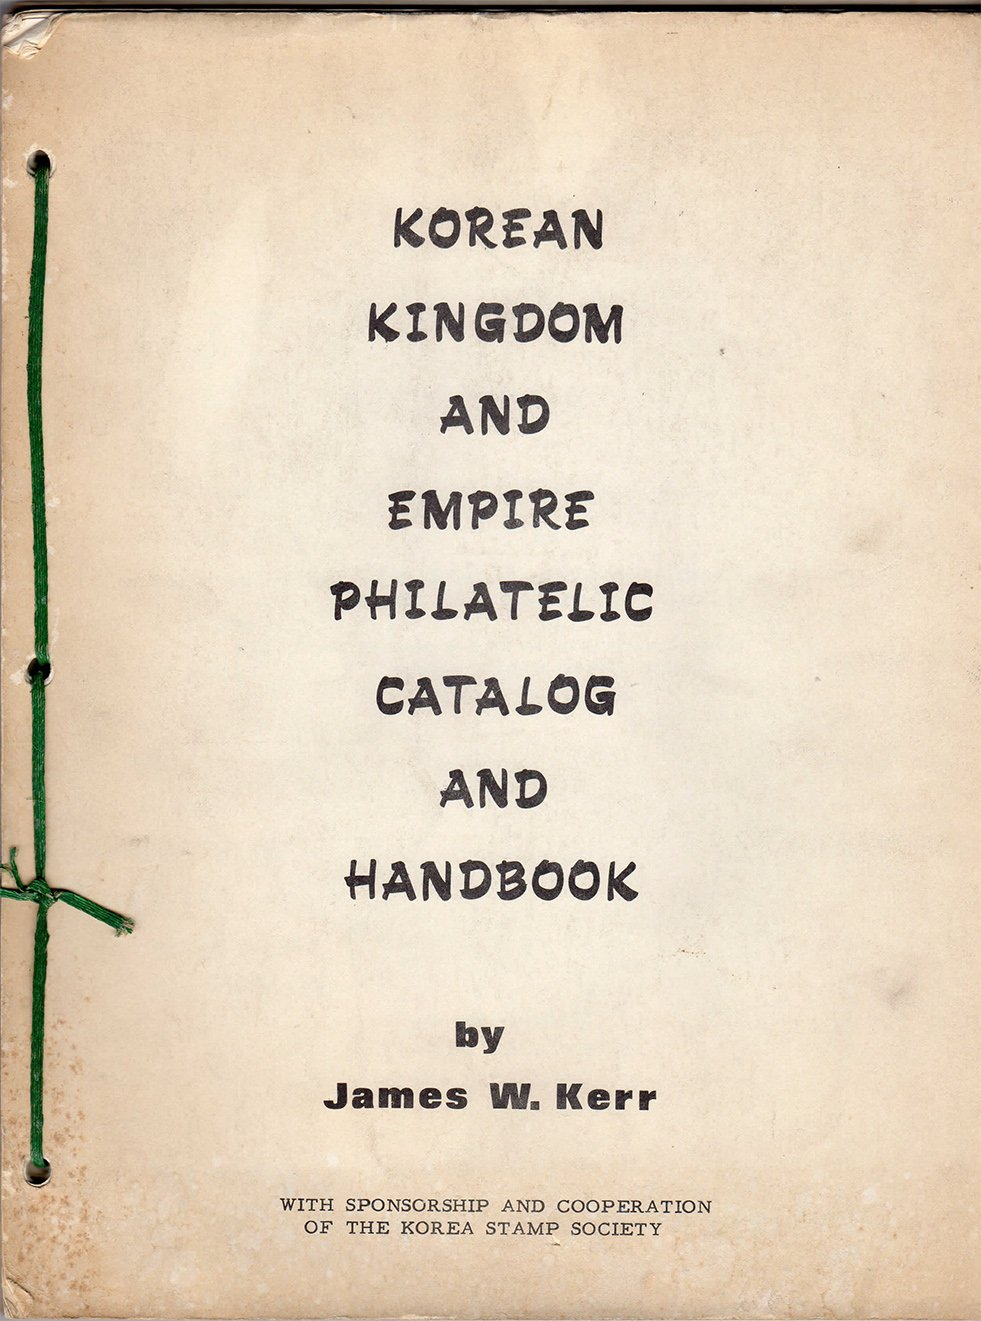 """Download (KSS Members Only): """"Korean Kingdom and Empire Philatelic"""